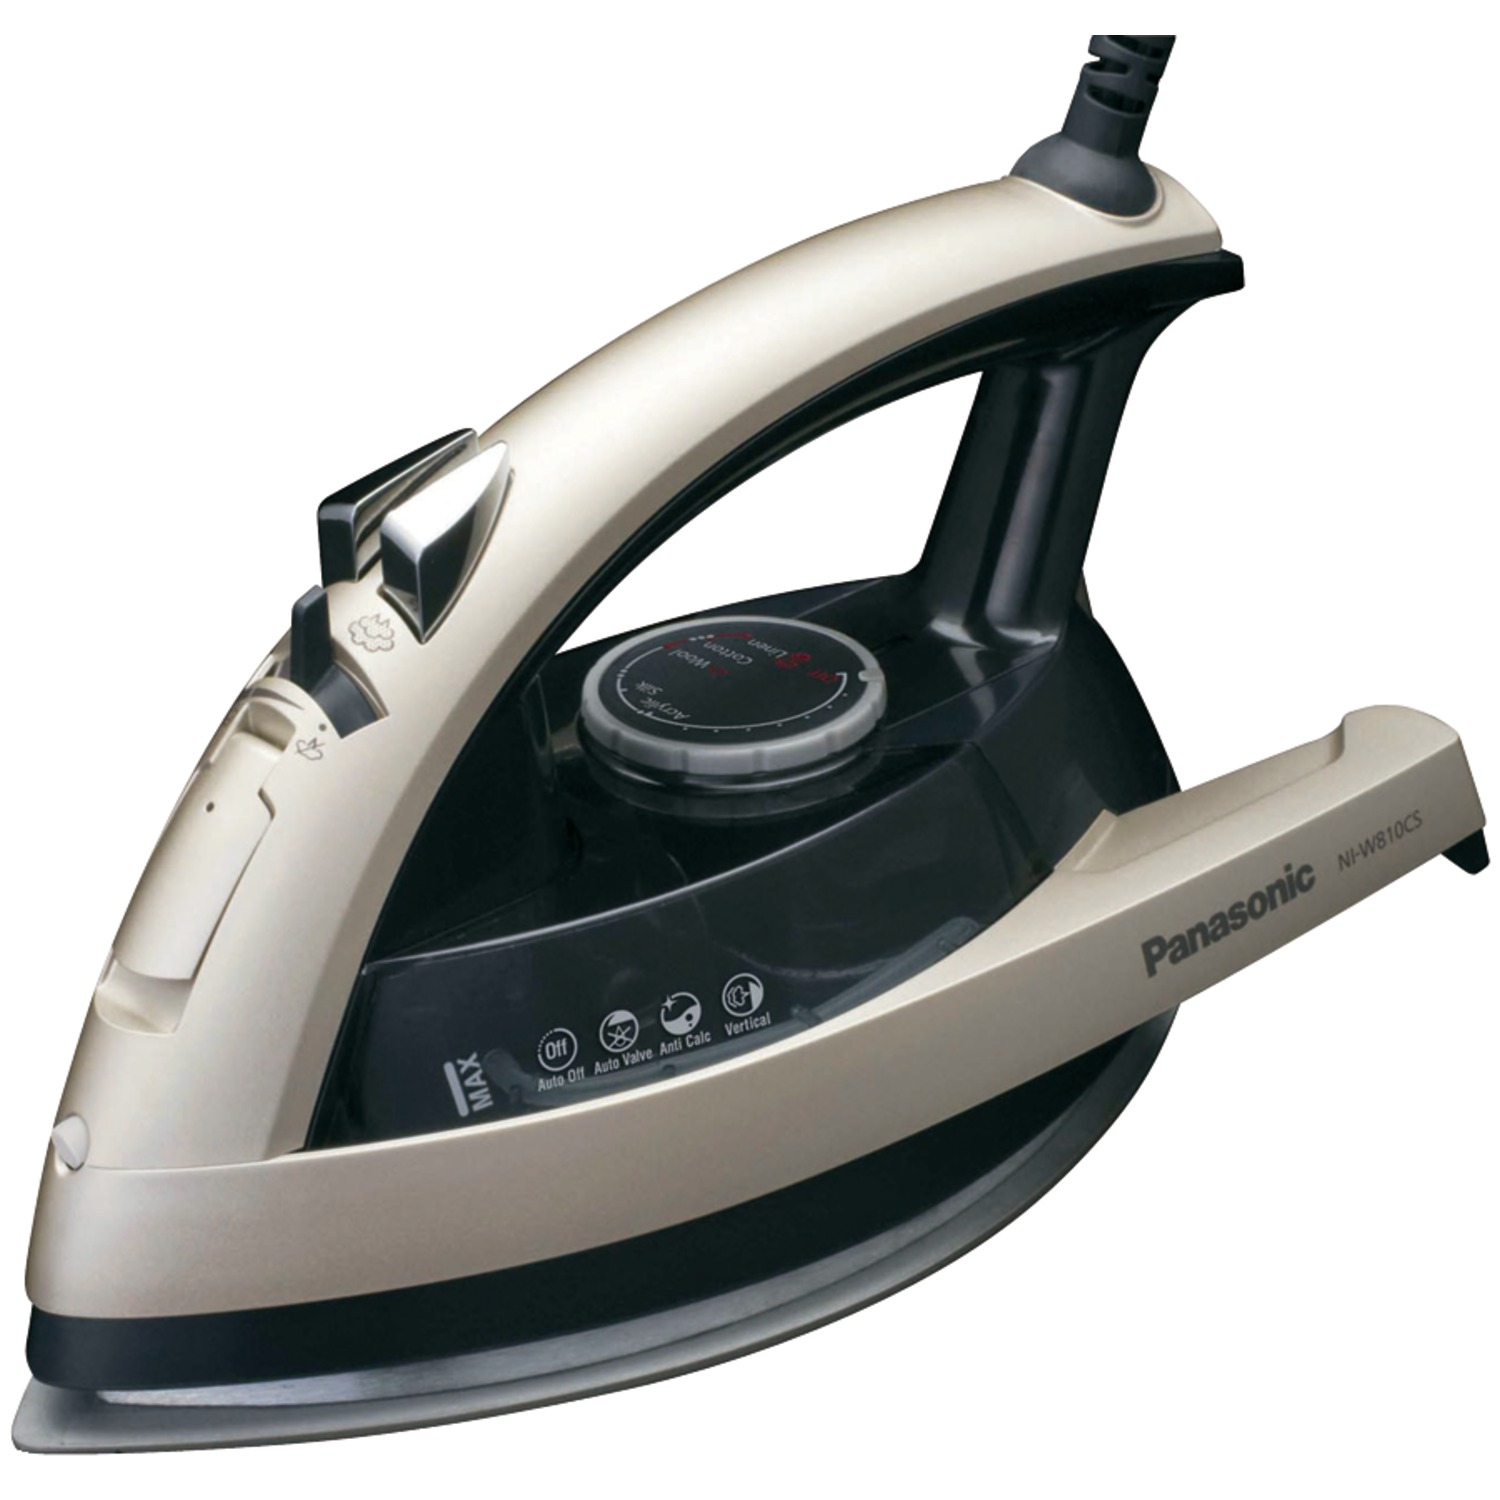 Image for Panasonic - Steam Iron - Sole Plate: Ceramic from Circuit City